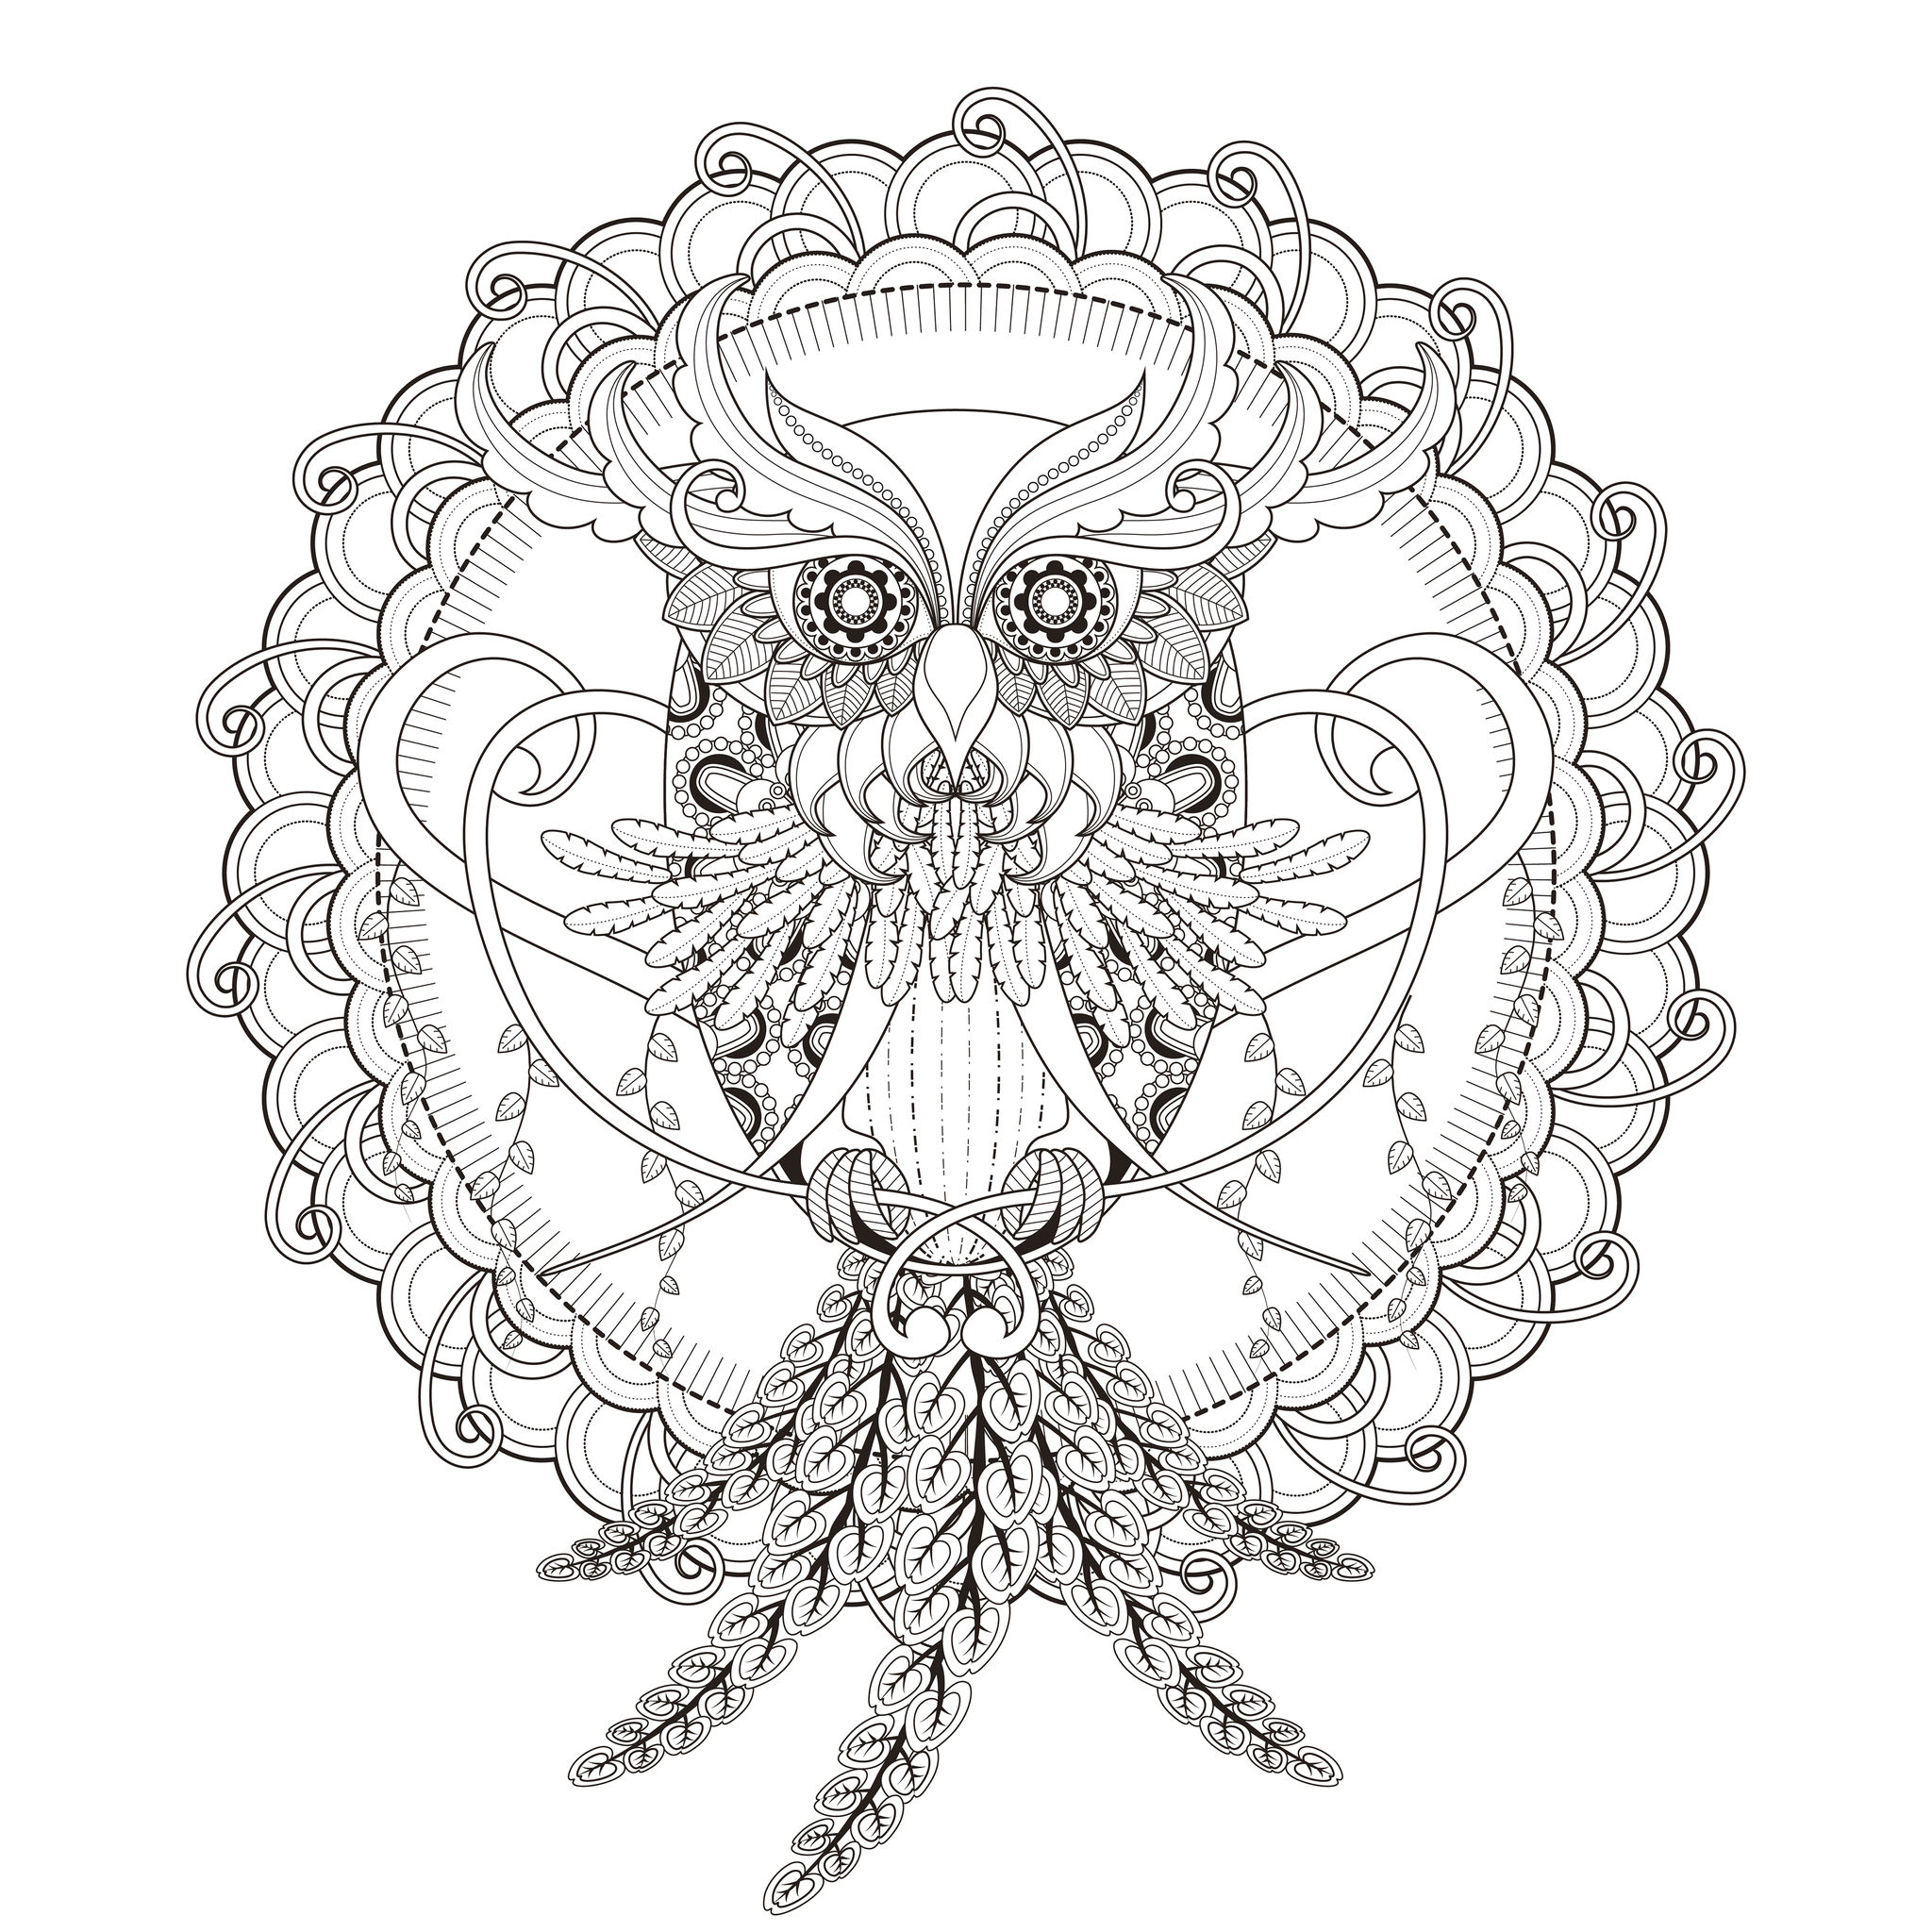 incredible owl mandala coloring page from the gallery mandalas artist kchung